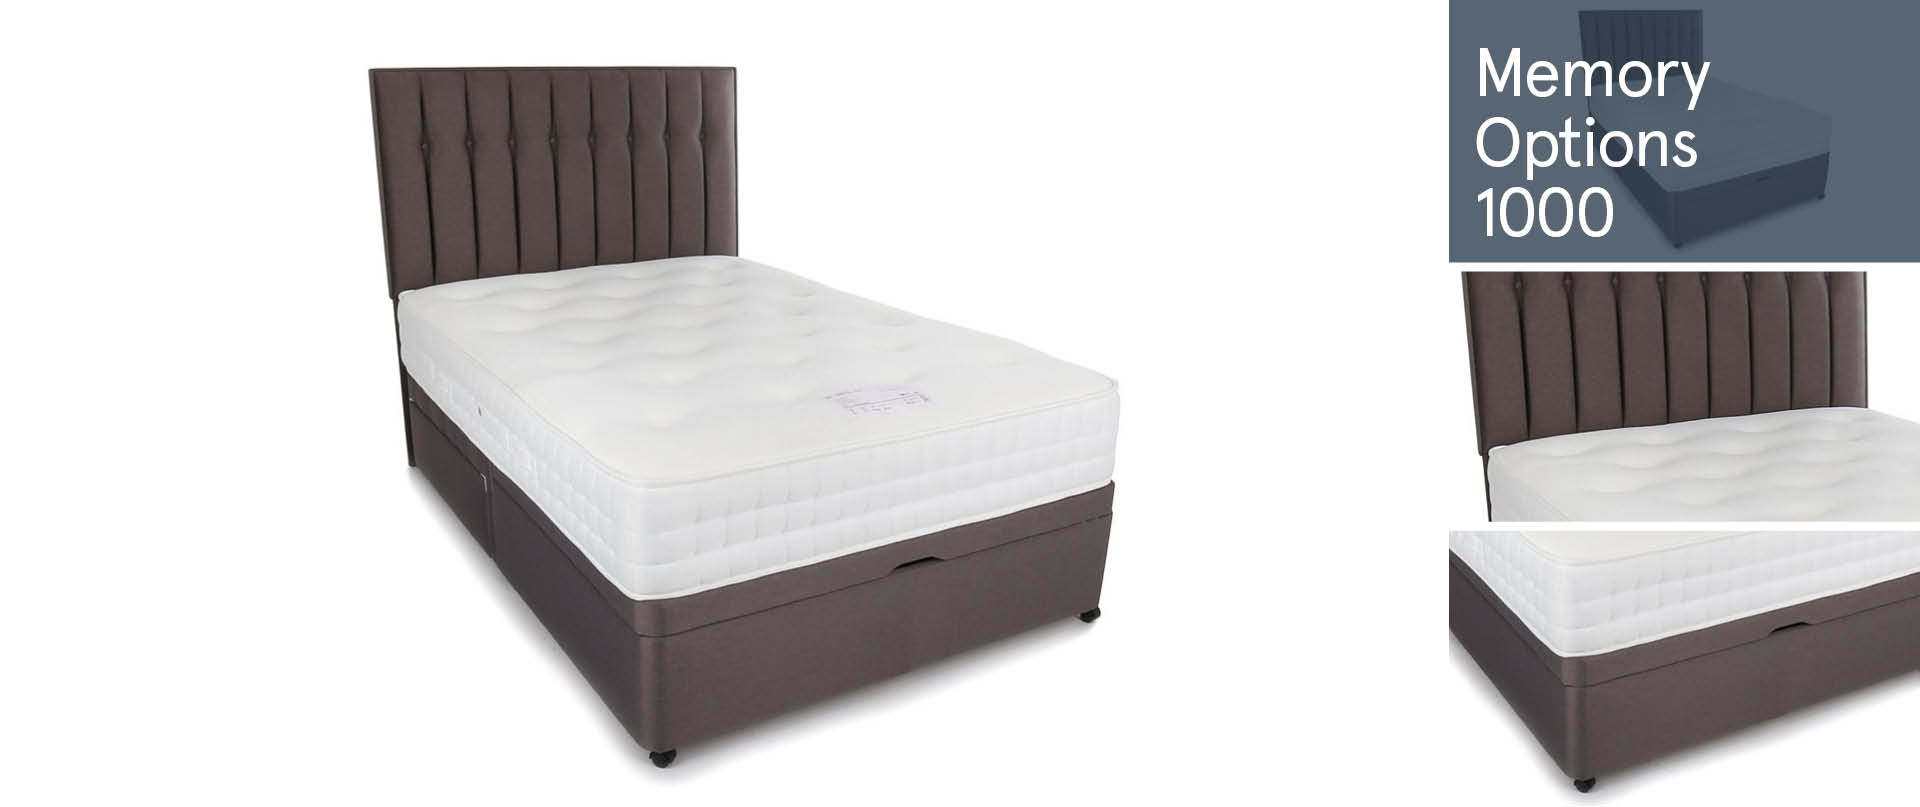 Memory-Options-1000 Ottoman Beds Ranges